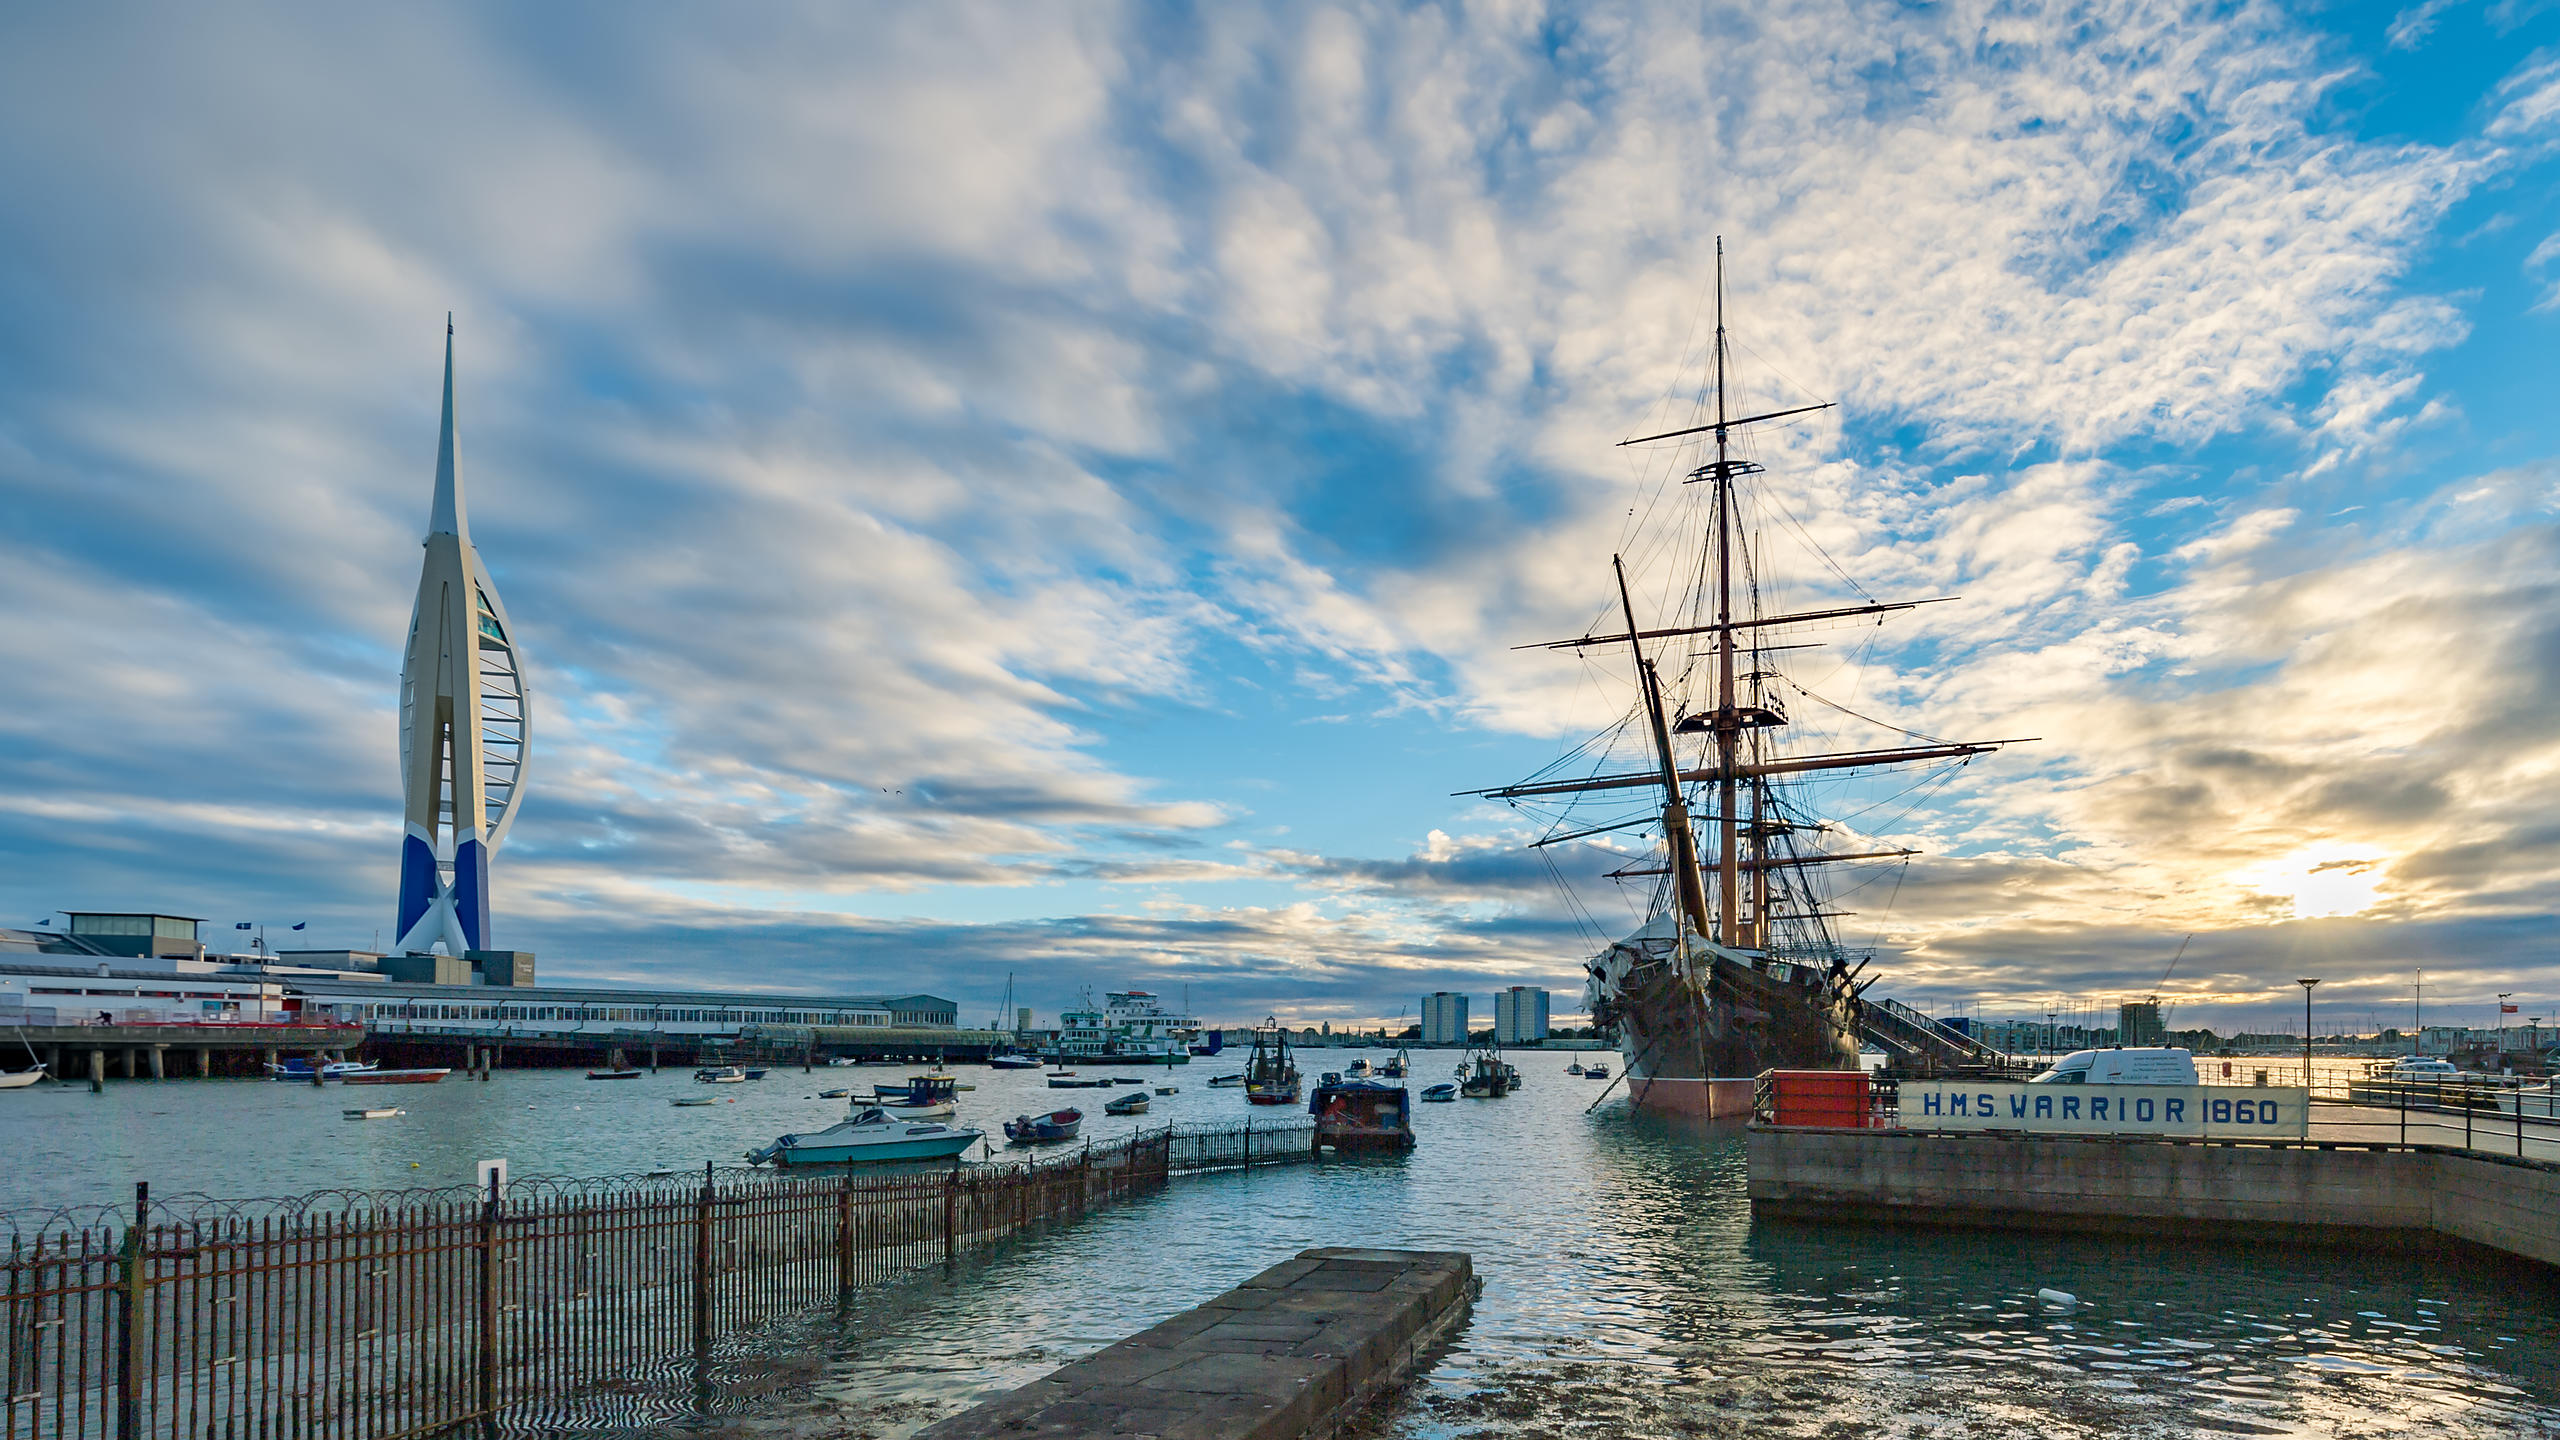 HMS Warrior and Spinnaker Tower at sunset, Portsmouth Historic Dockyard